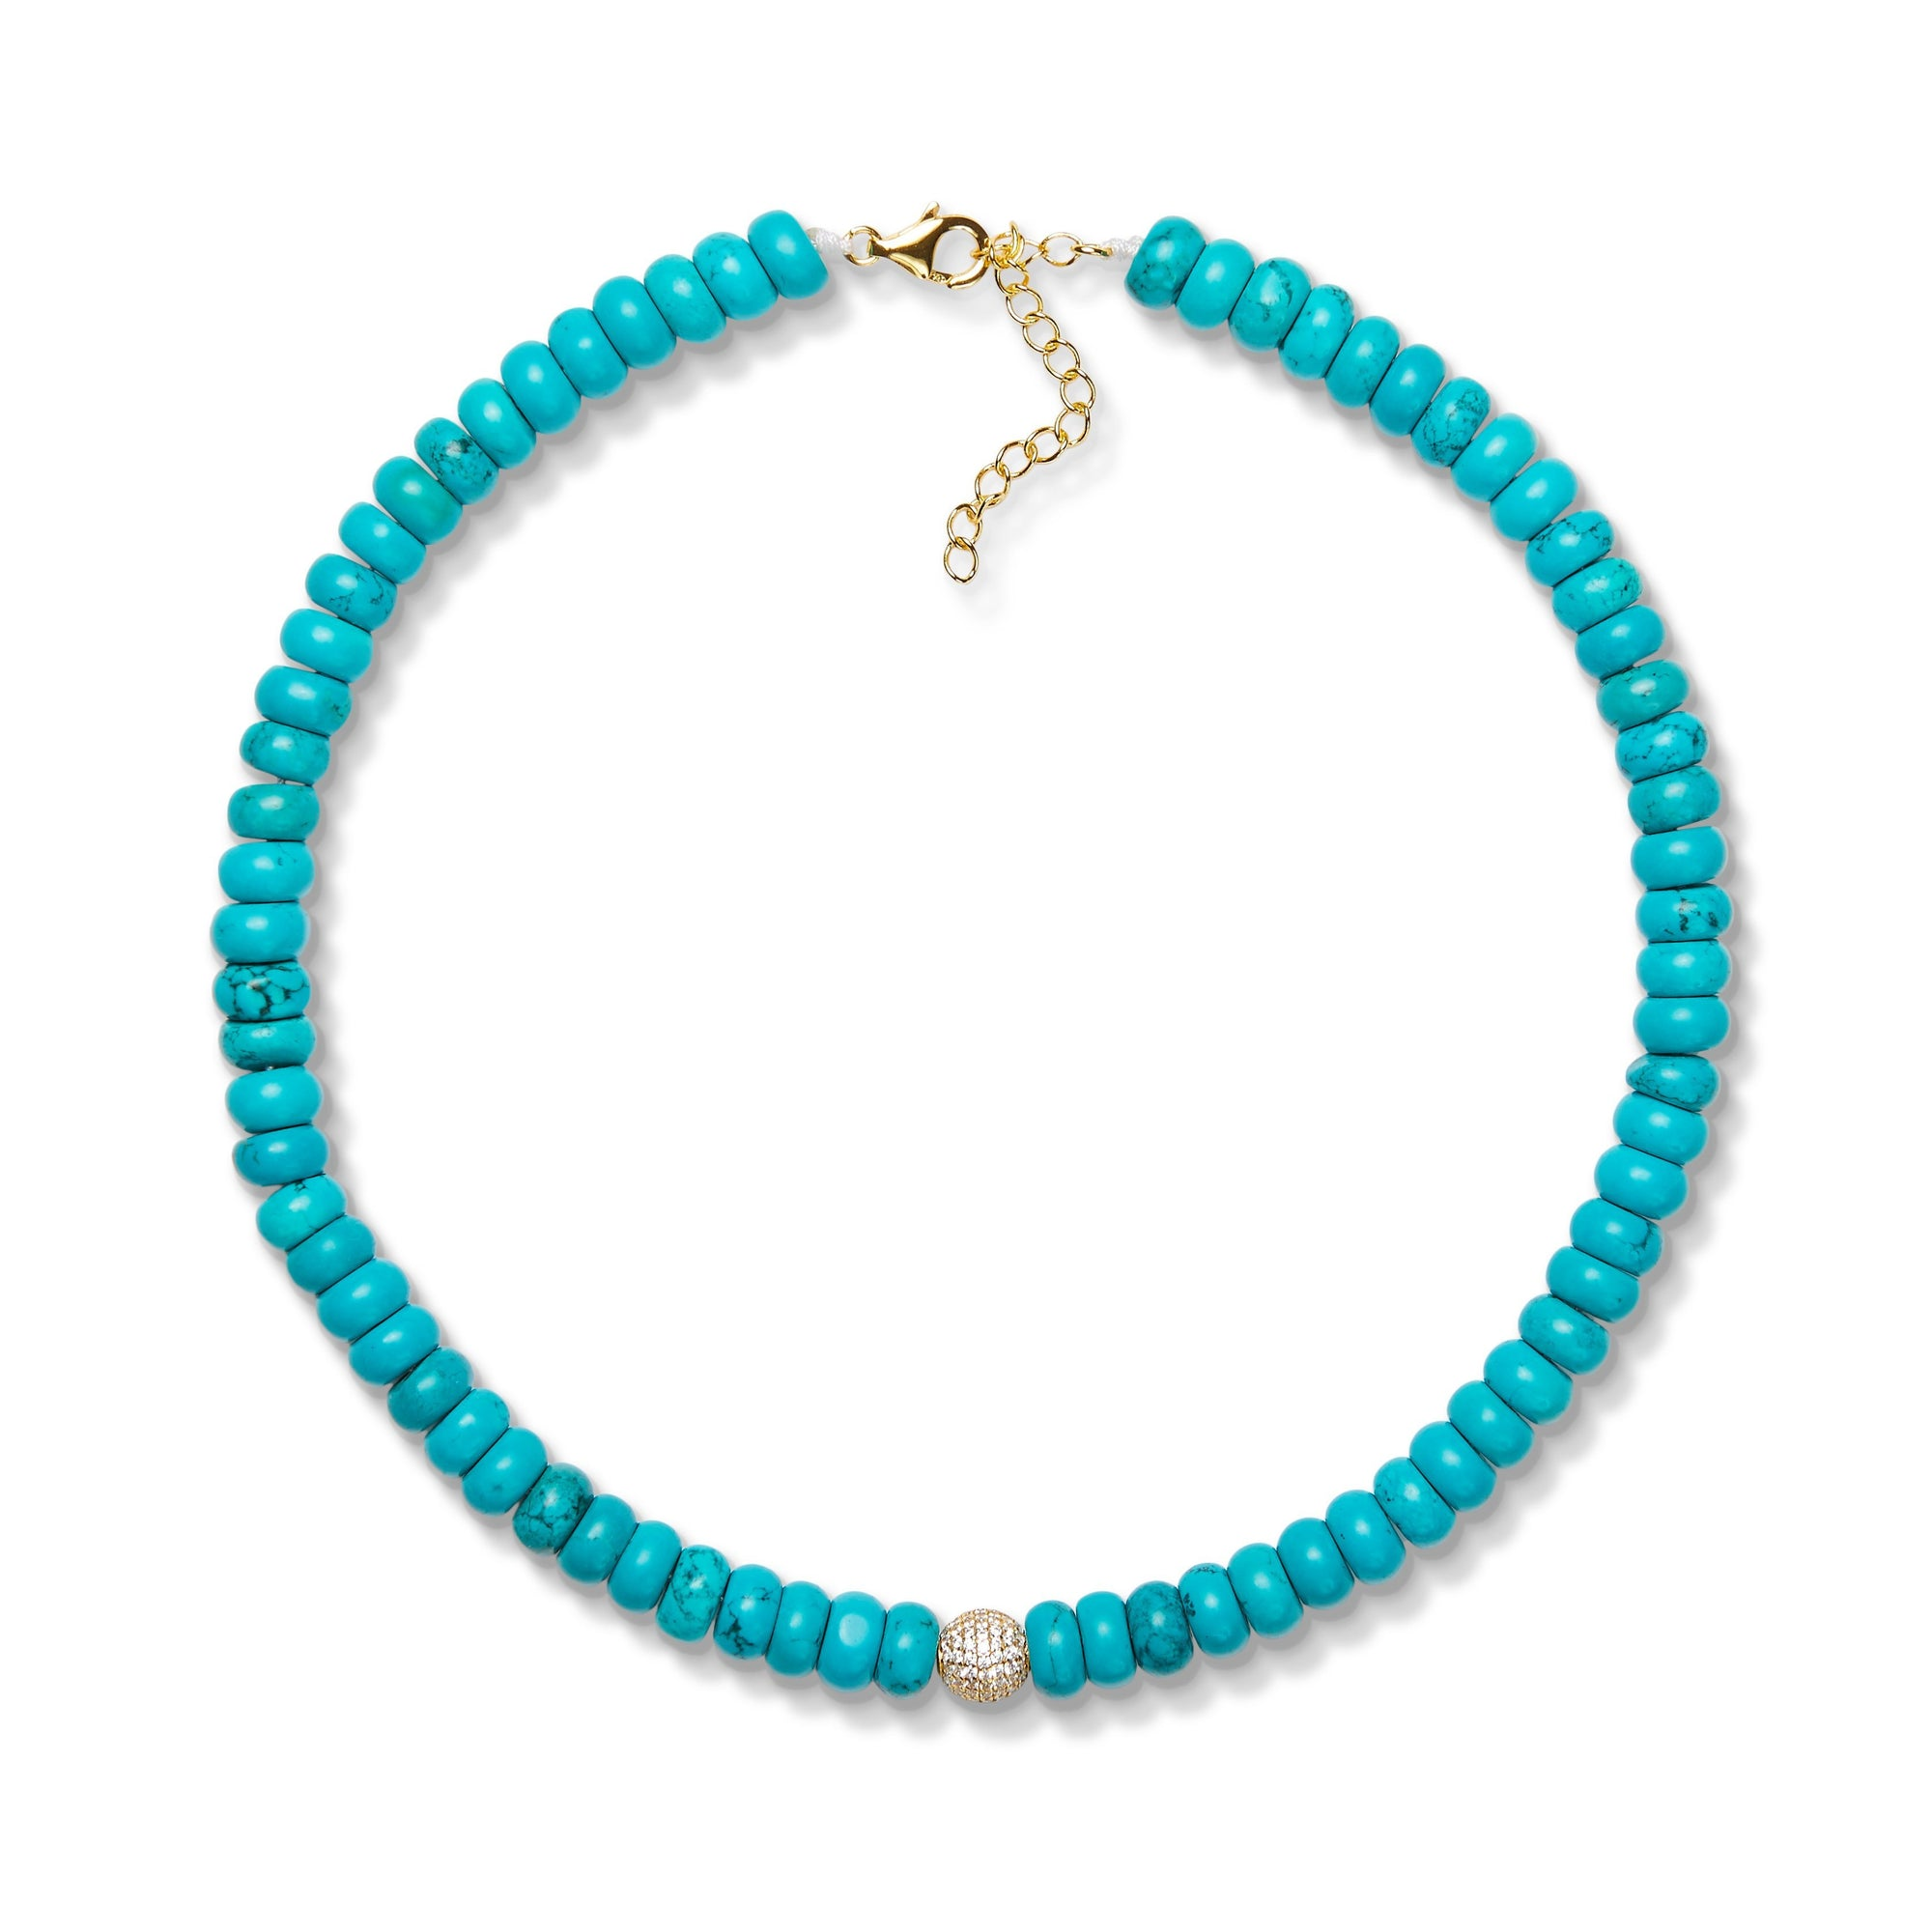 8,3mm turquoise bead necklace